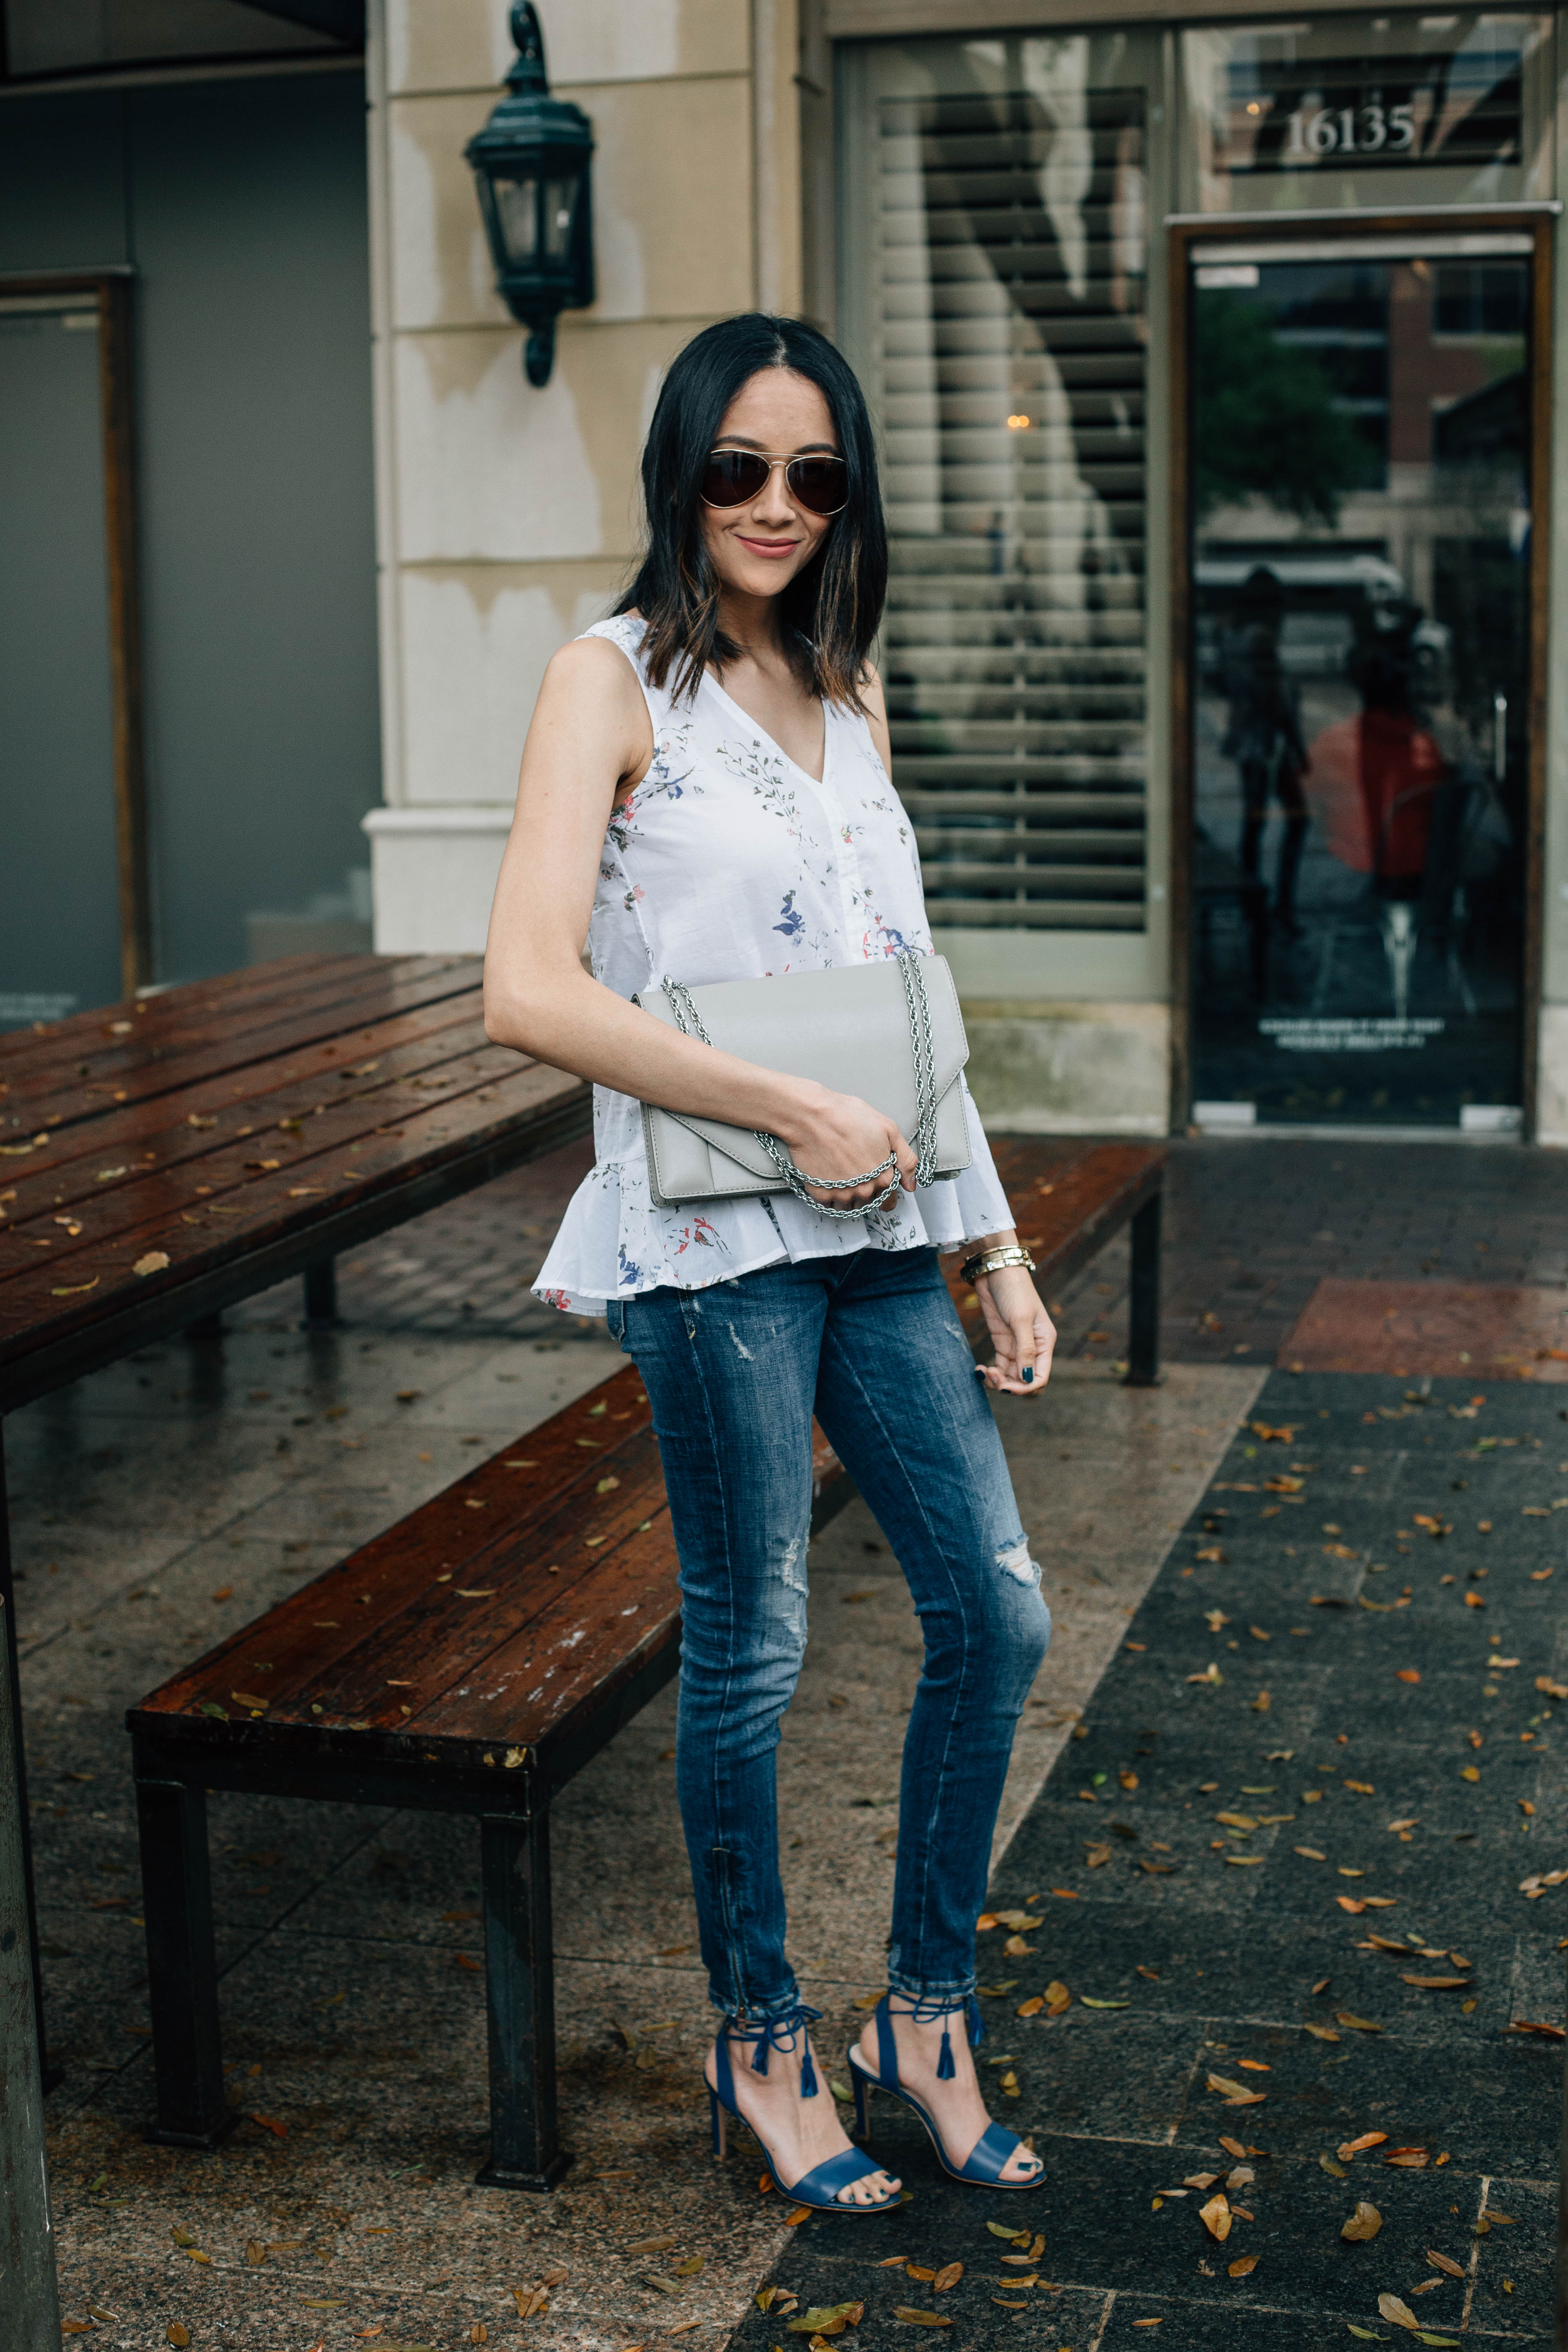 Daily Craving, Fashion Blogger, Floral Print Tops, Skinny Jeans, Lace Up Sandals, Effortless Style